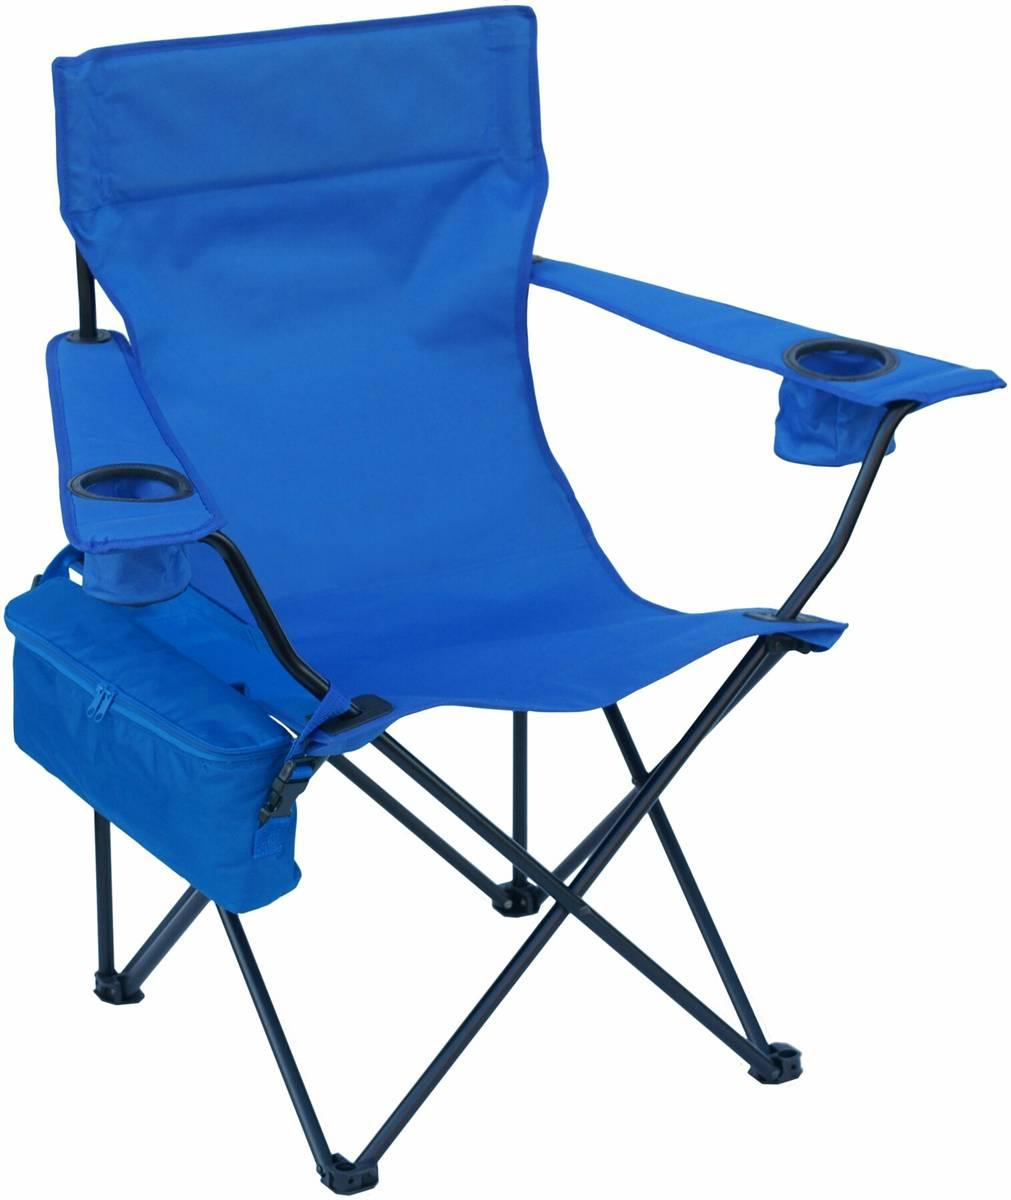 American Flag Camping Chair